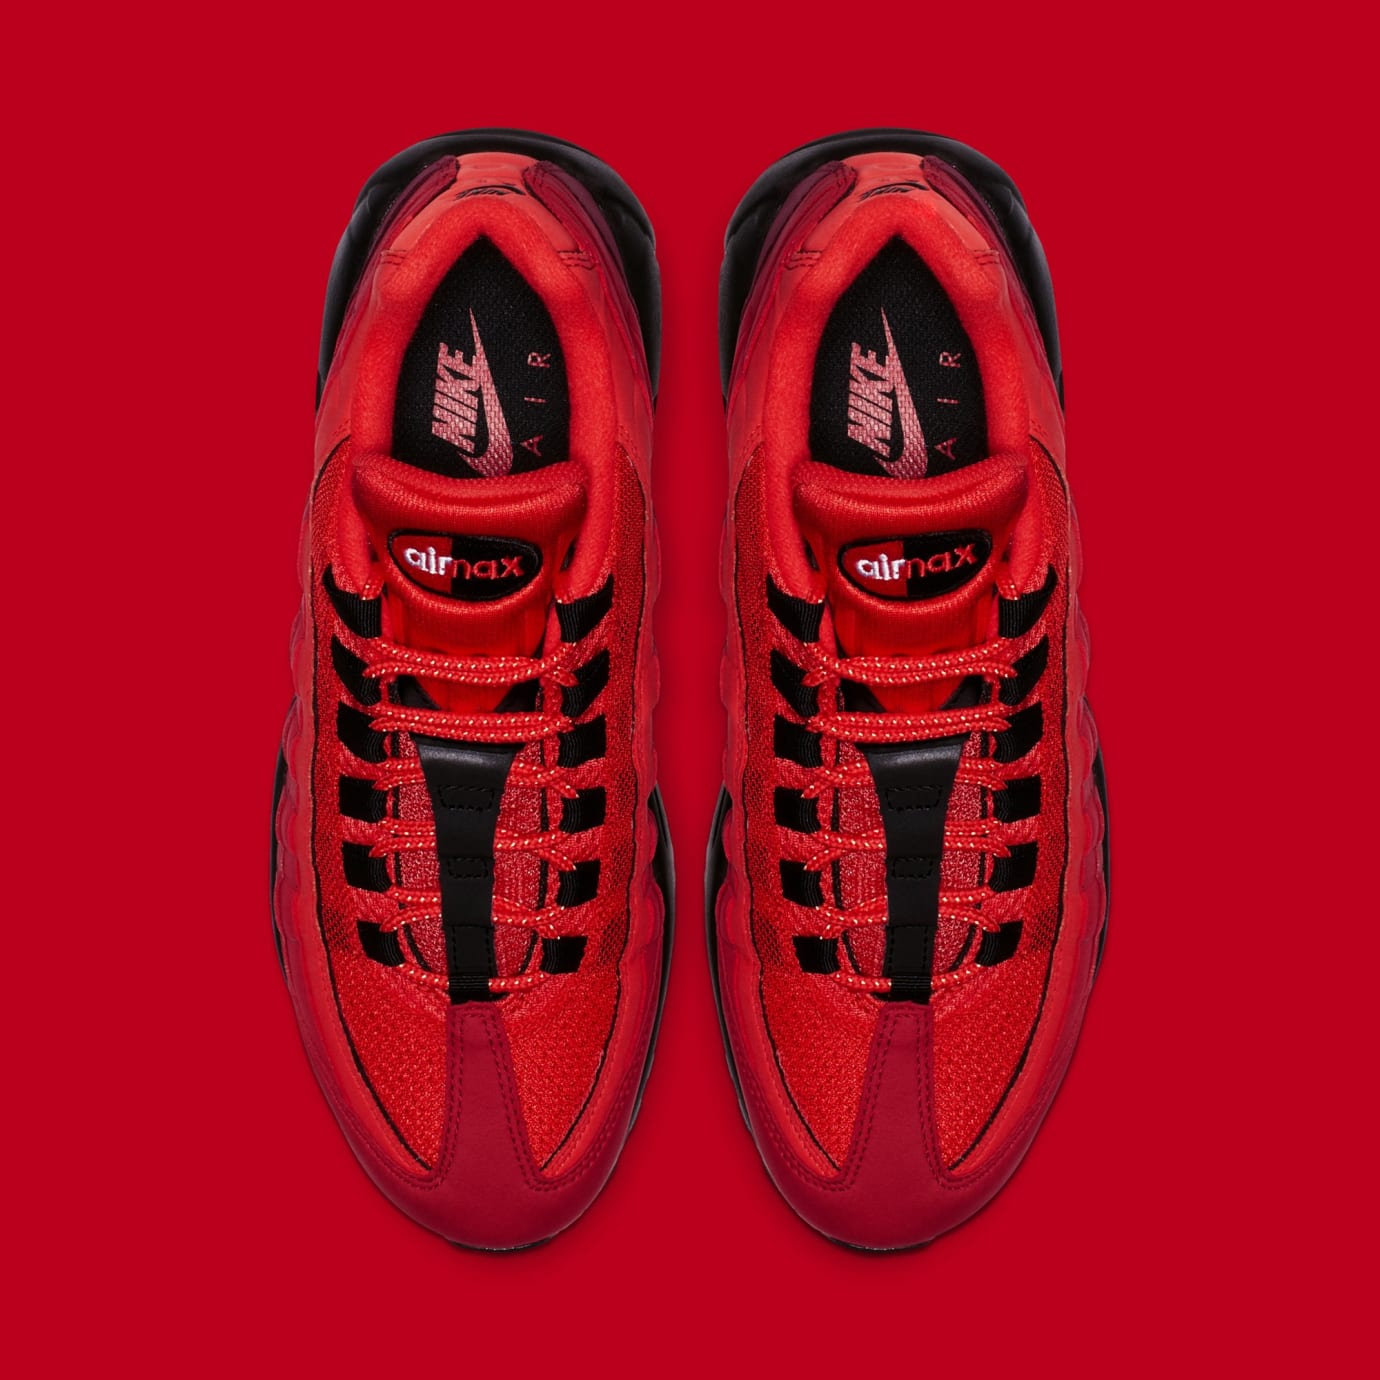 finest selection 7fc49 ec956 Image via Nike Nike Air Max 95  Habanero Red Black-White  AT2865-600 (